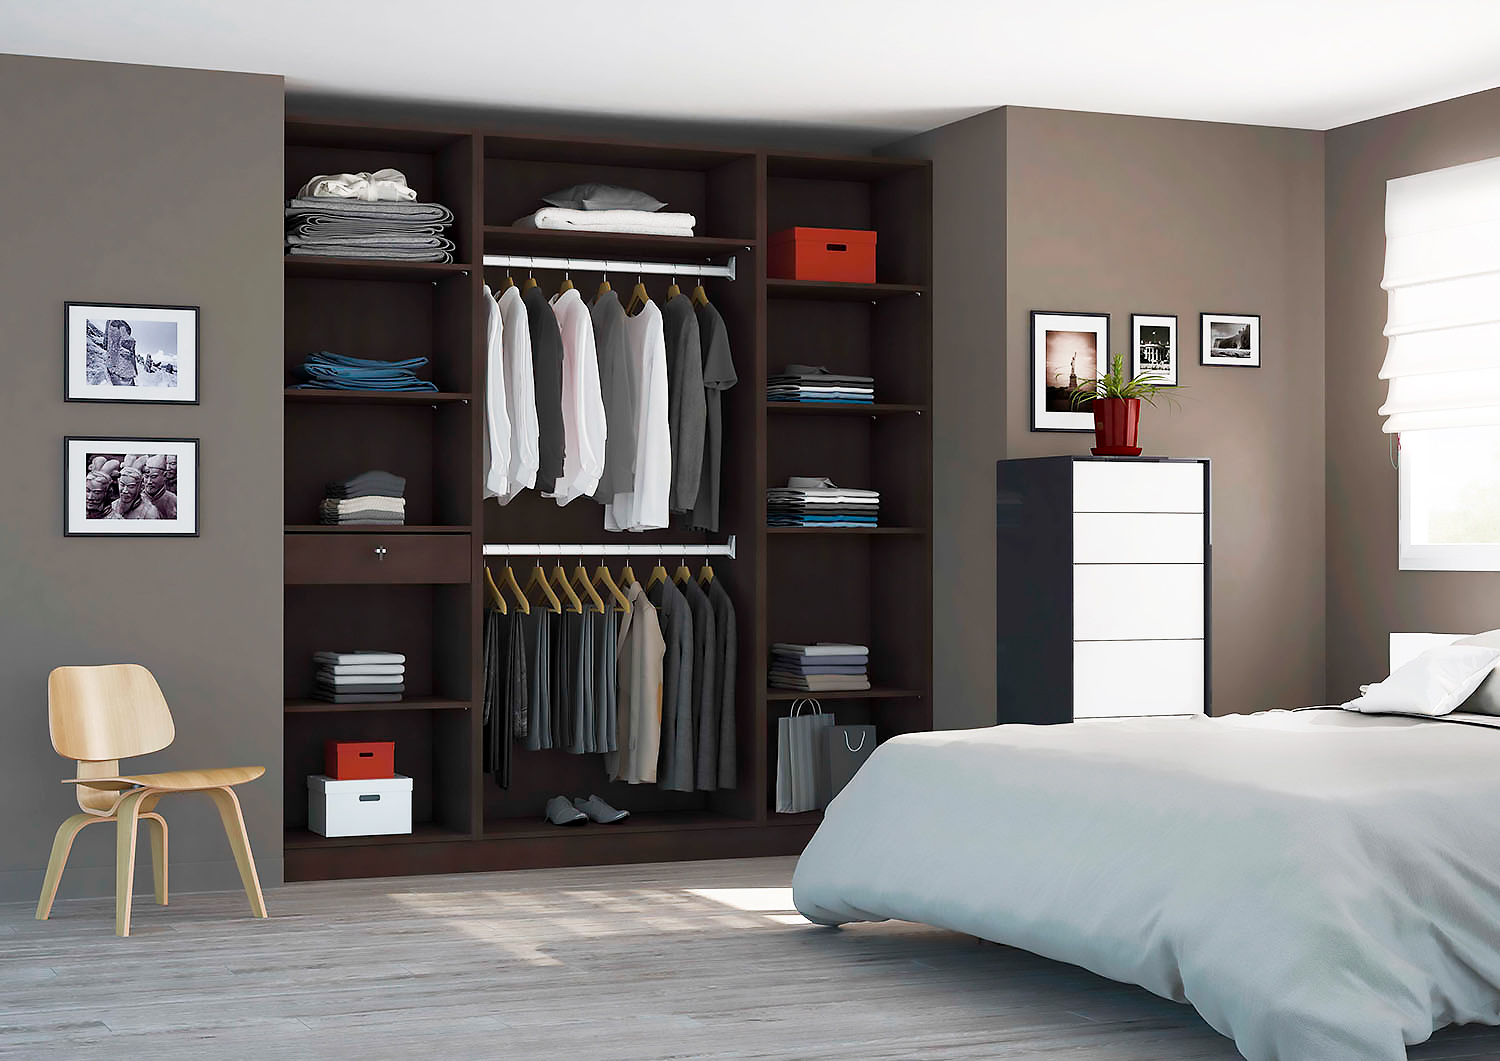 faire un dressing dans un placard perfect un dressing with faire un dressing dans un placard. Black Bedroom Furniture Sets. Home Design Ideas